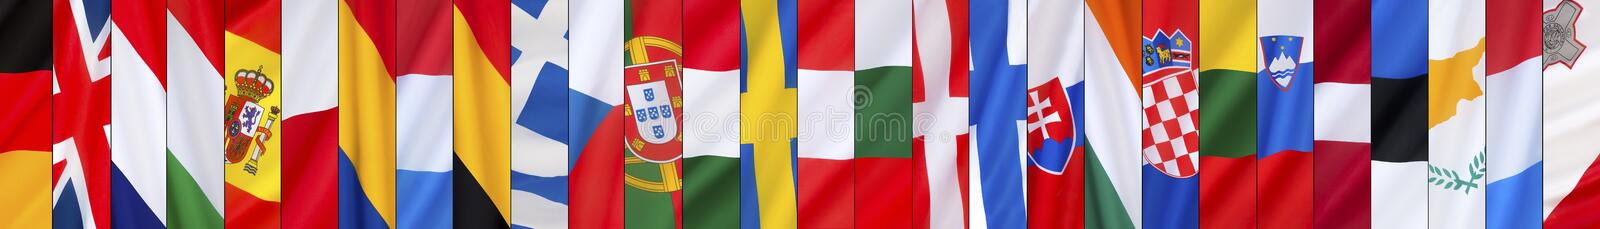 The 28 Flags of the European Union - Page Header stock image